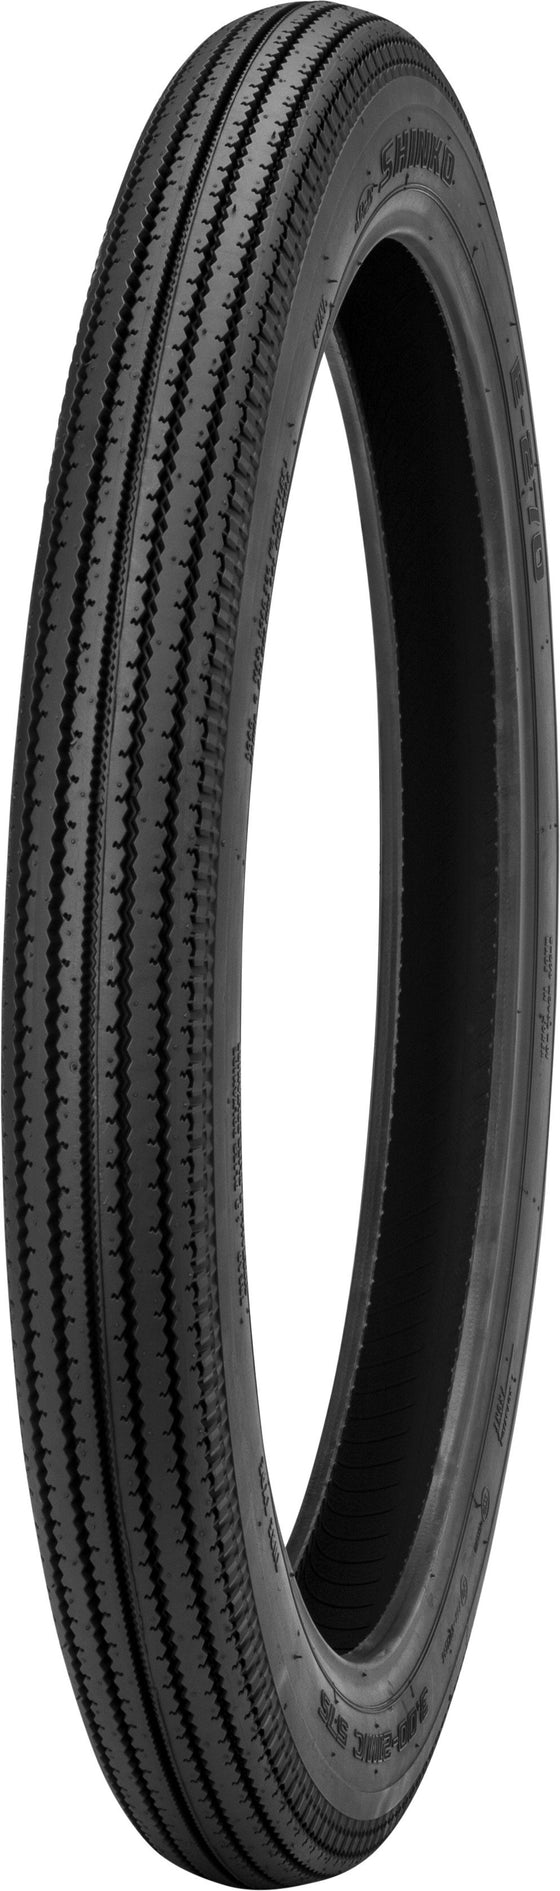 Shinko Super Classic 270 Tire - hardcoremx.com